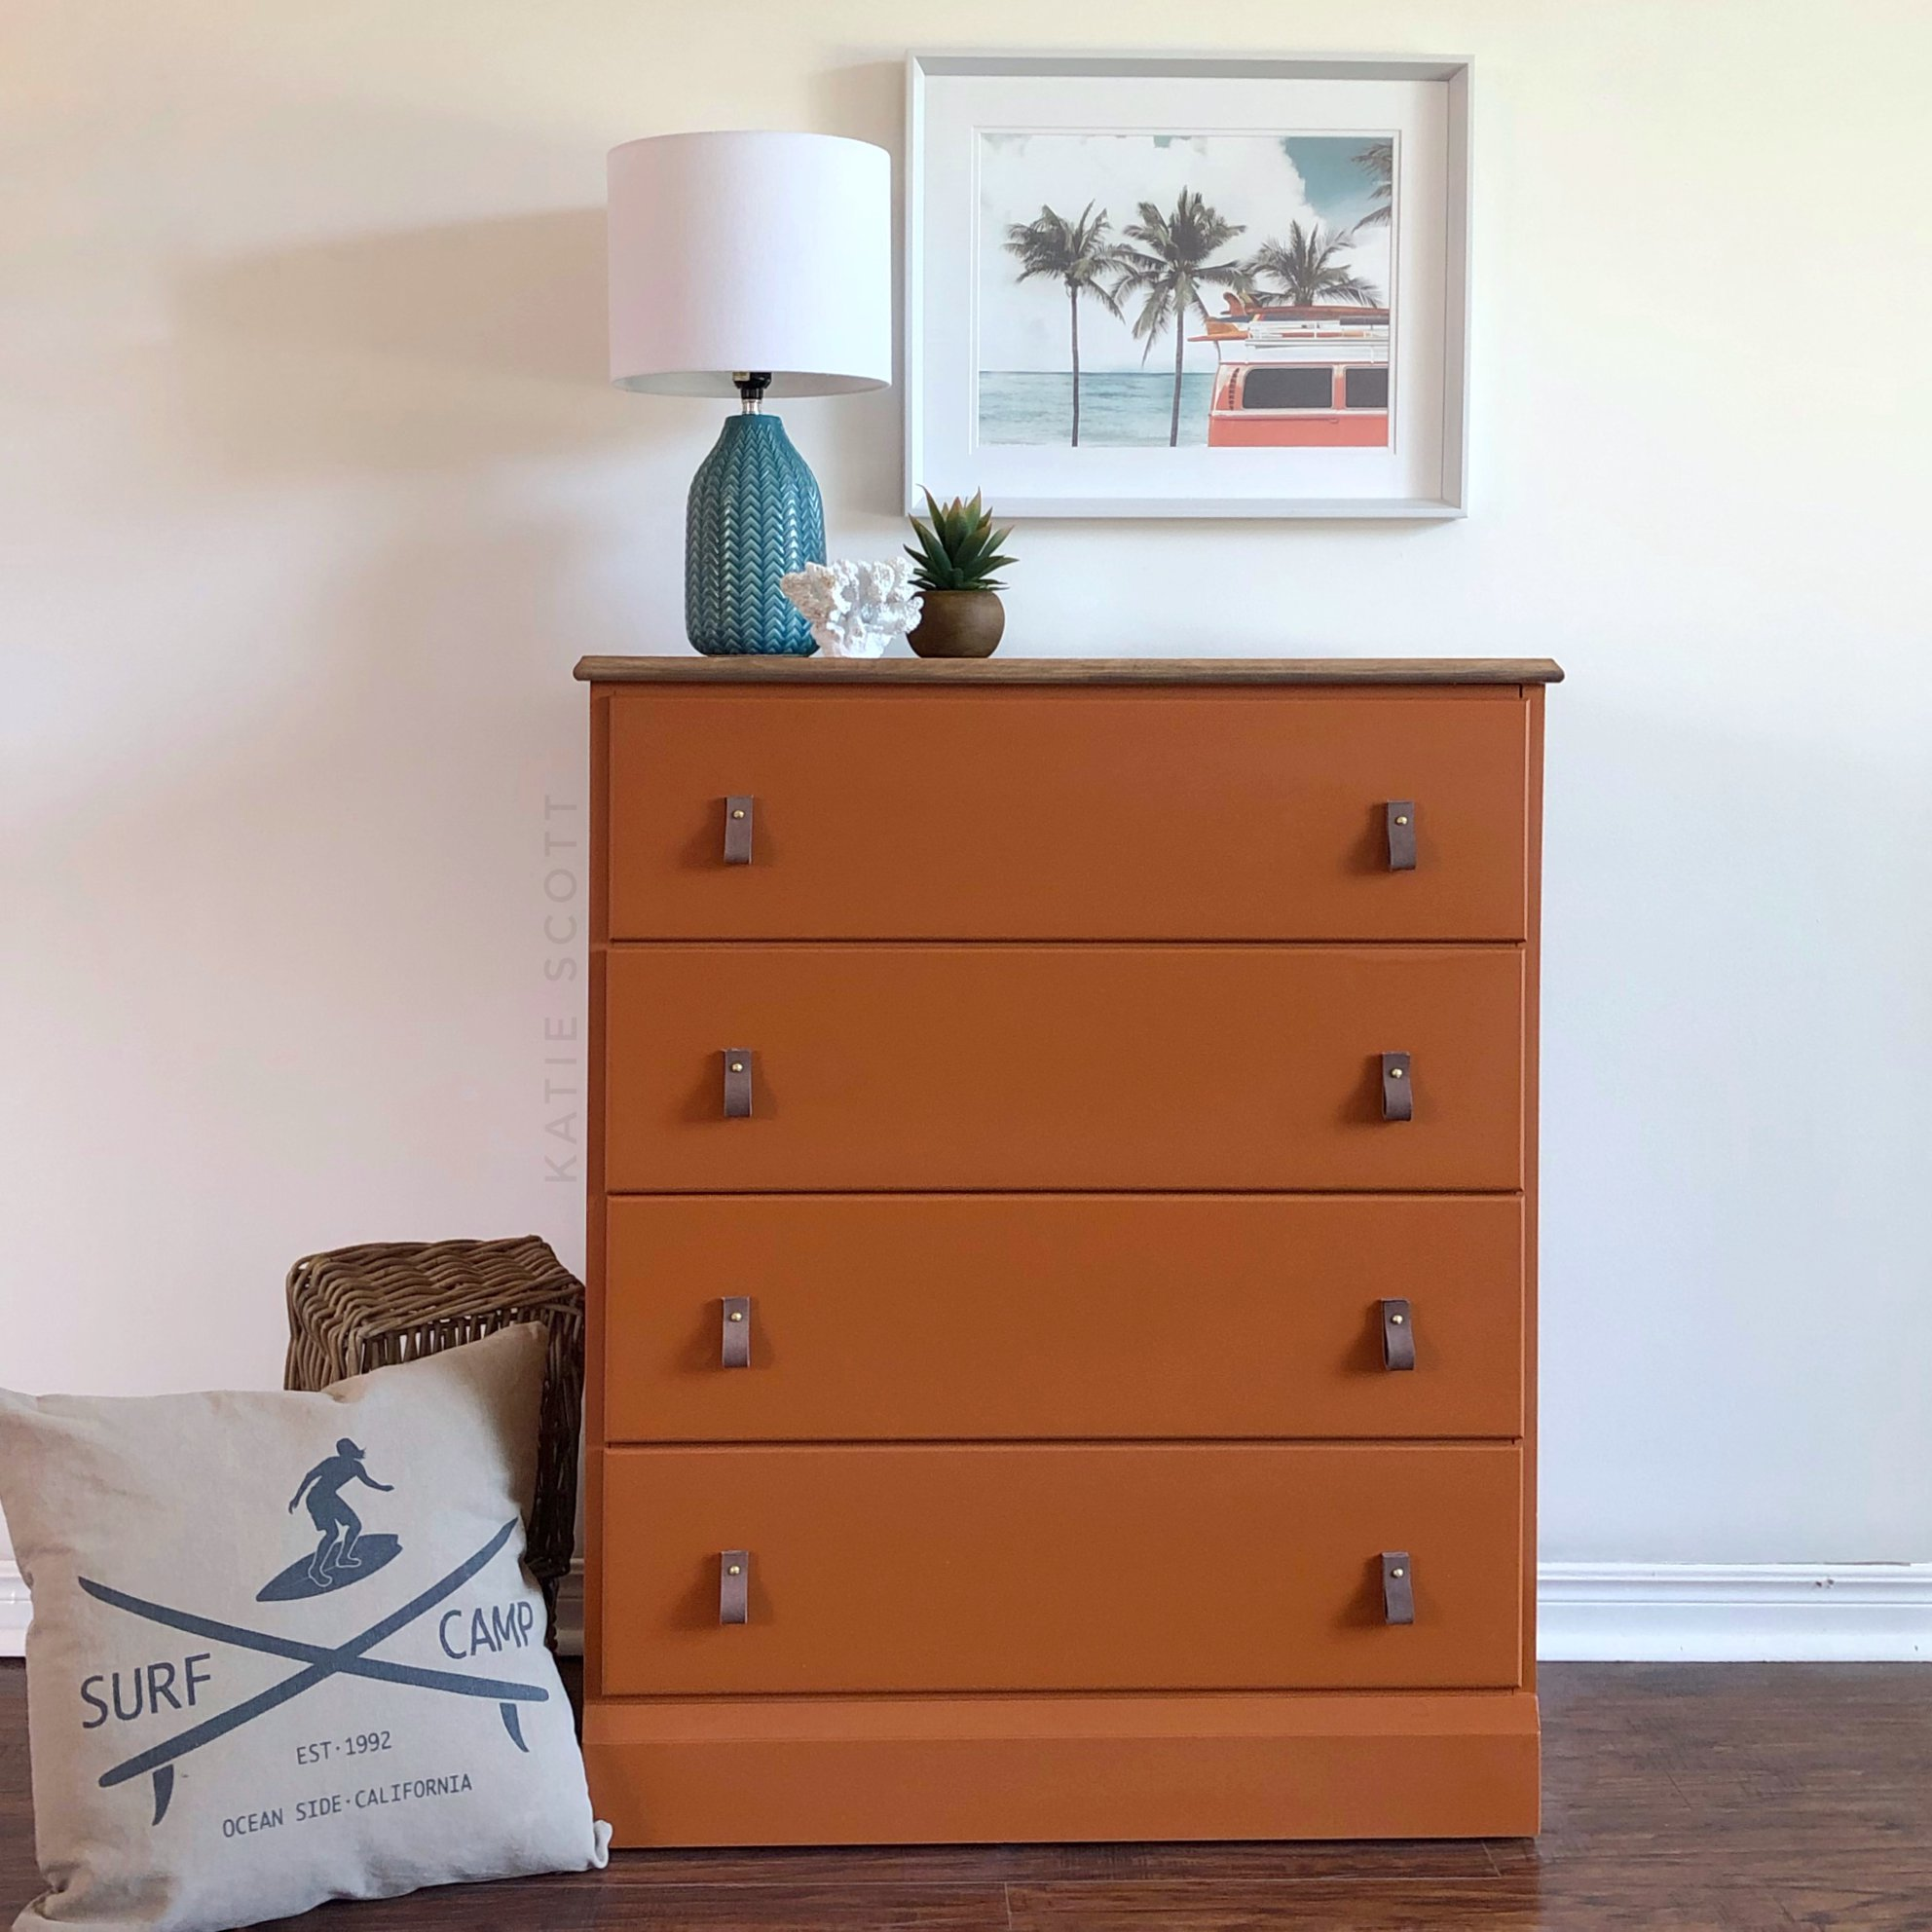 Tall Dresser in With a Twist with Leather Pulls